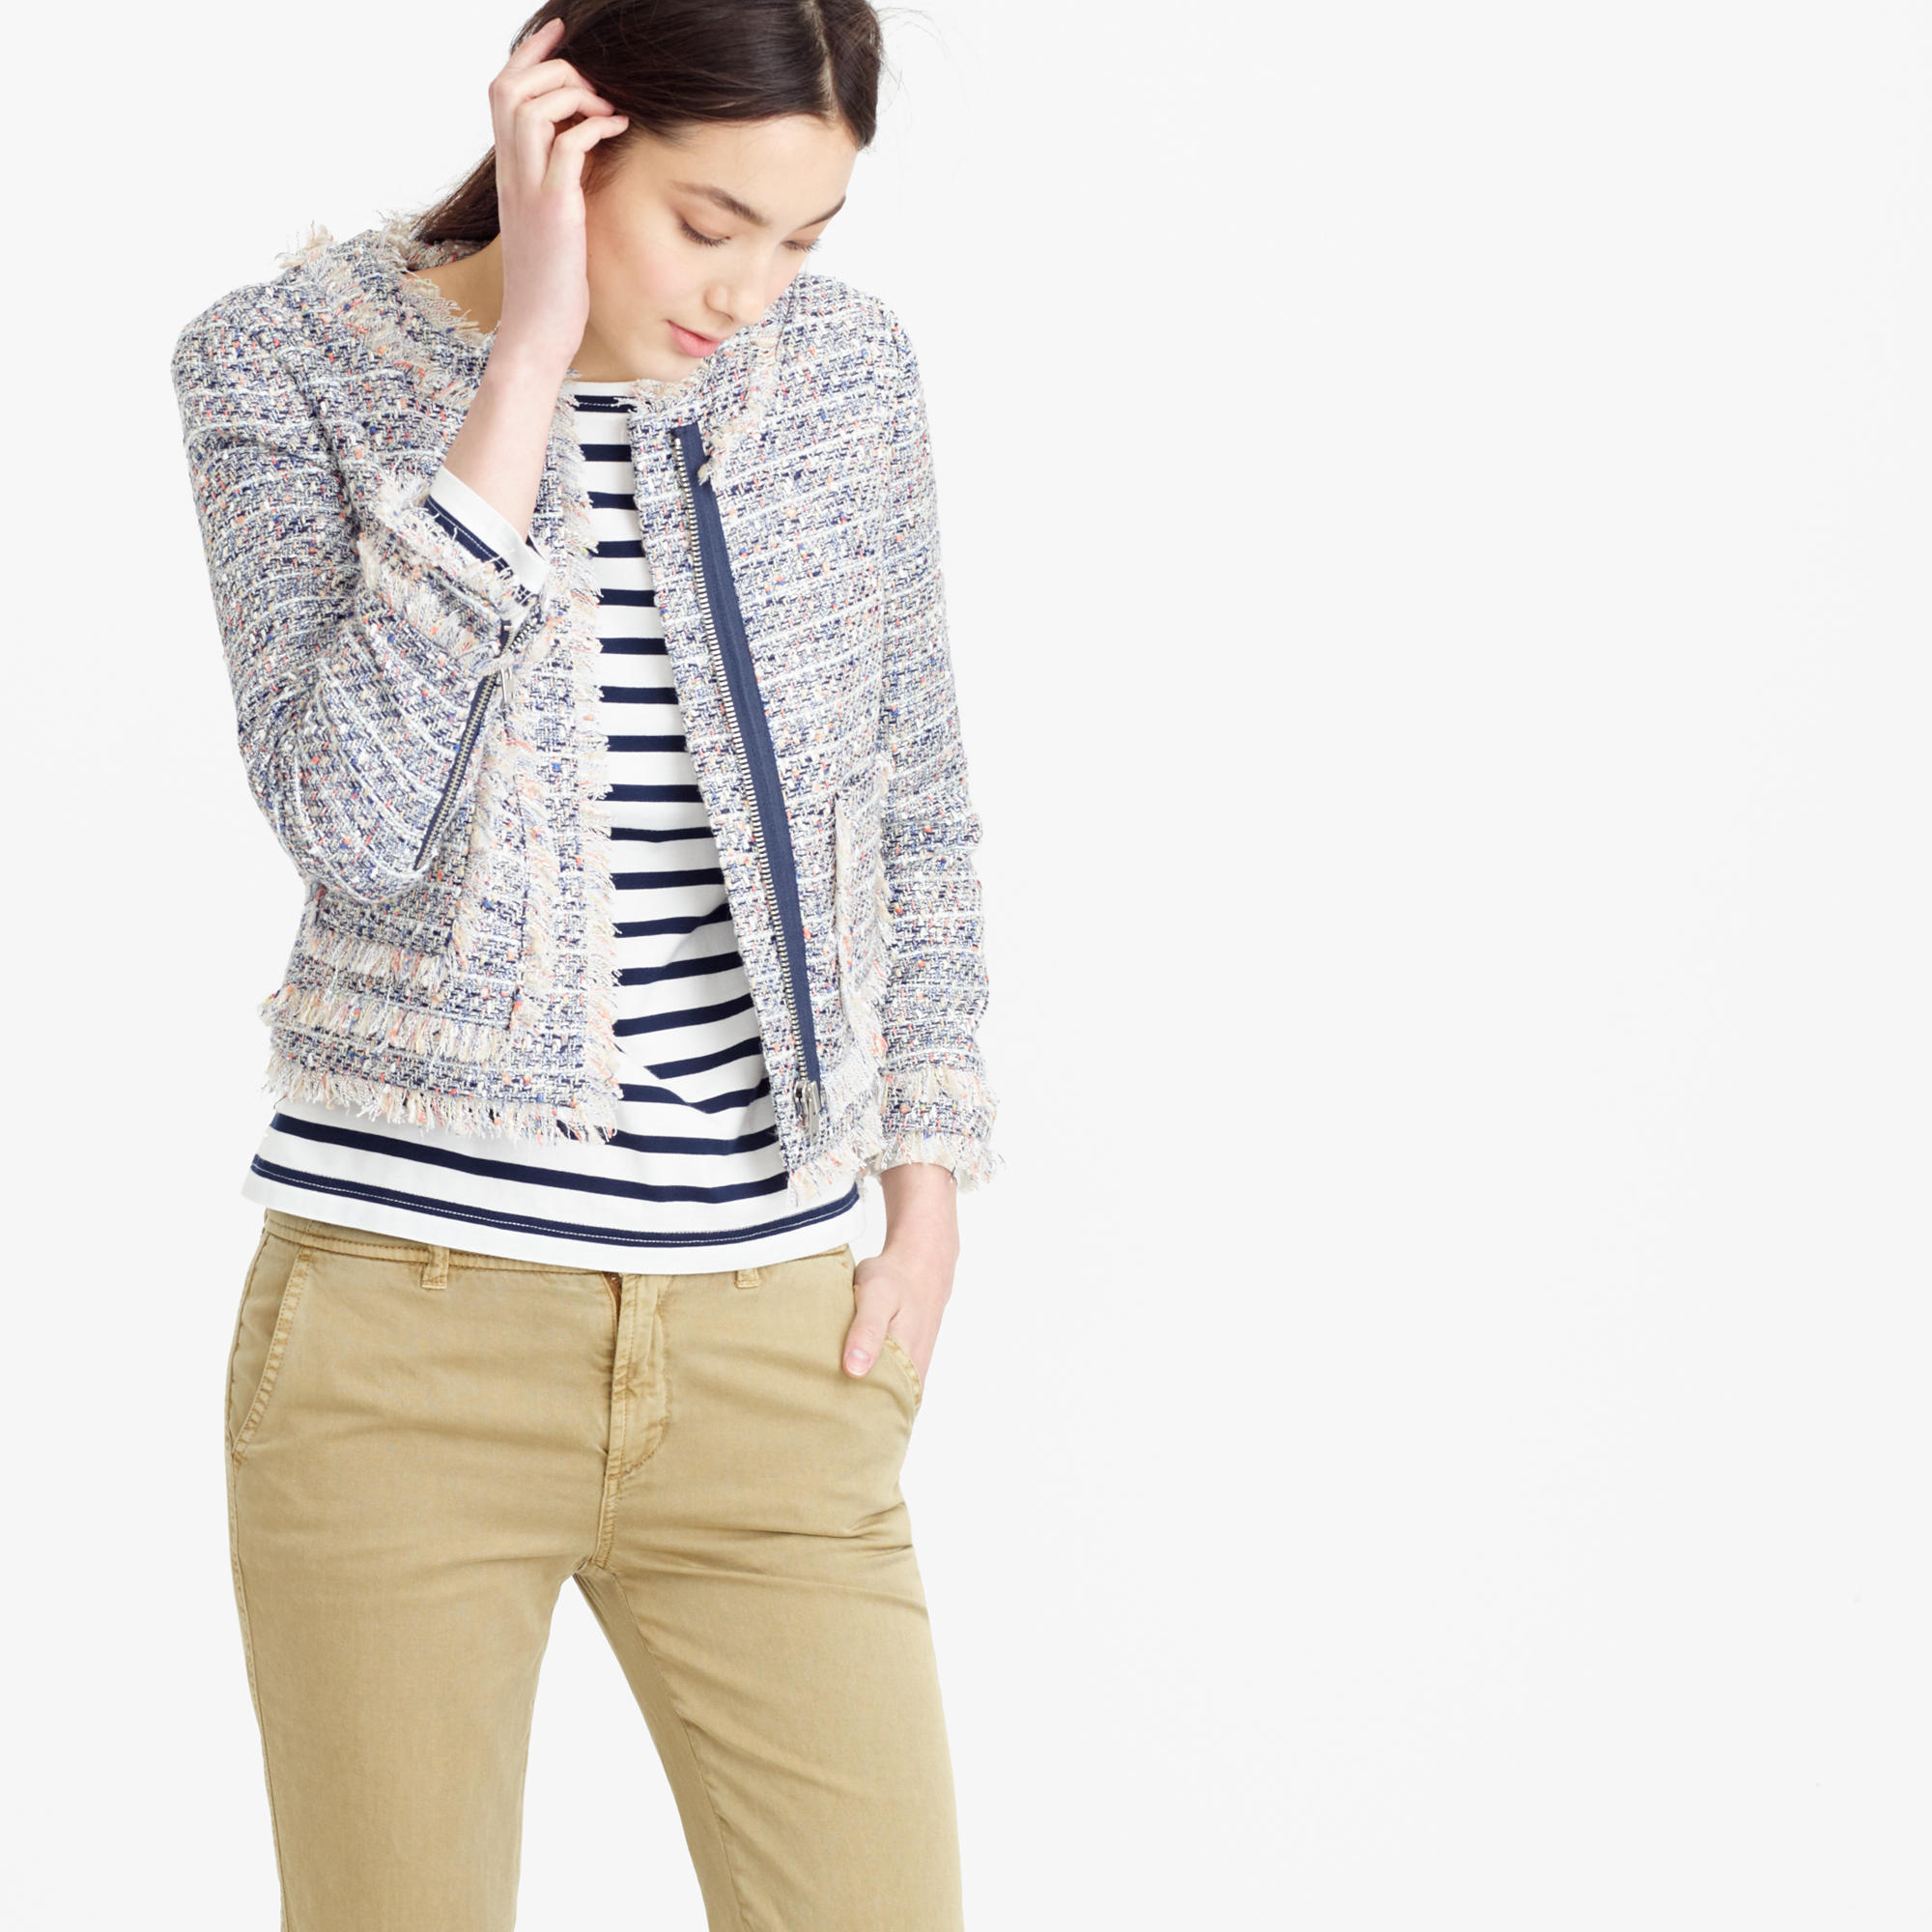 Petite tweed jacket with zippers : Women outerwear & blazers | J.Crew